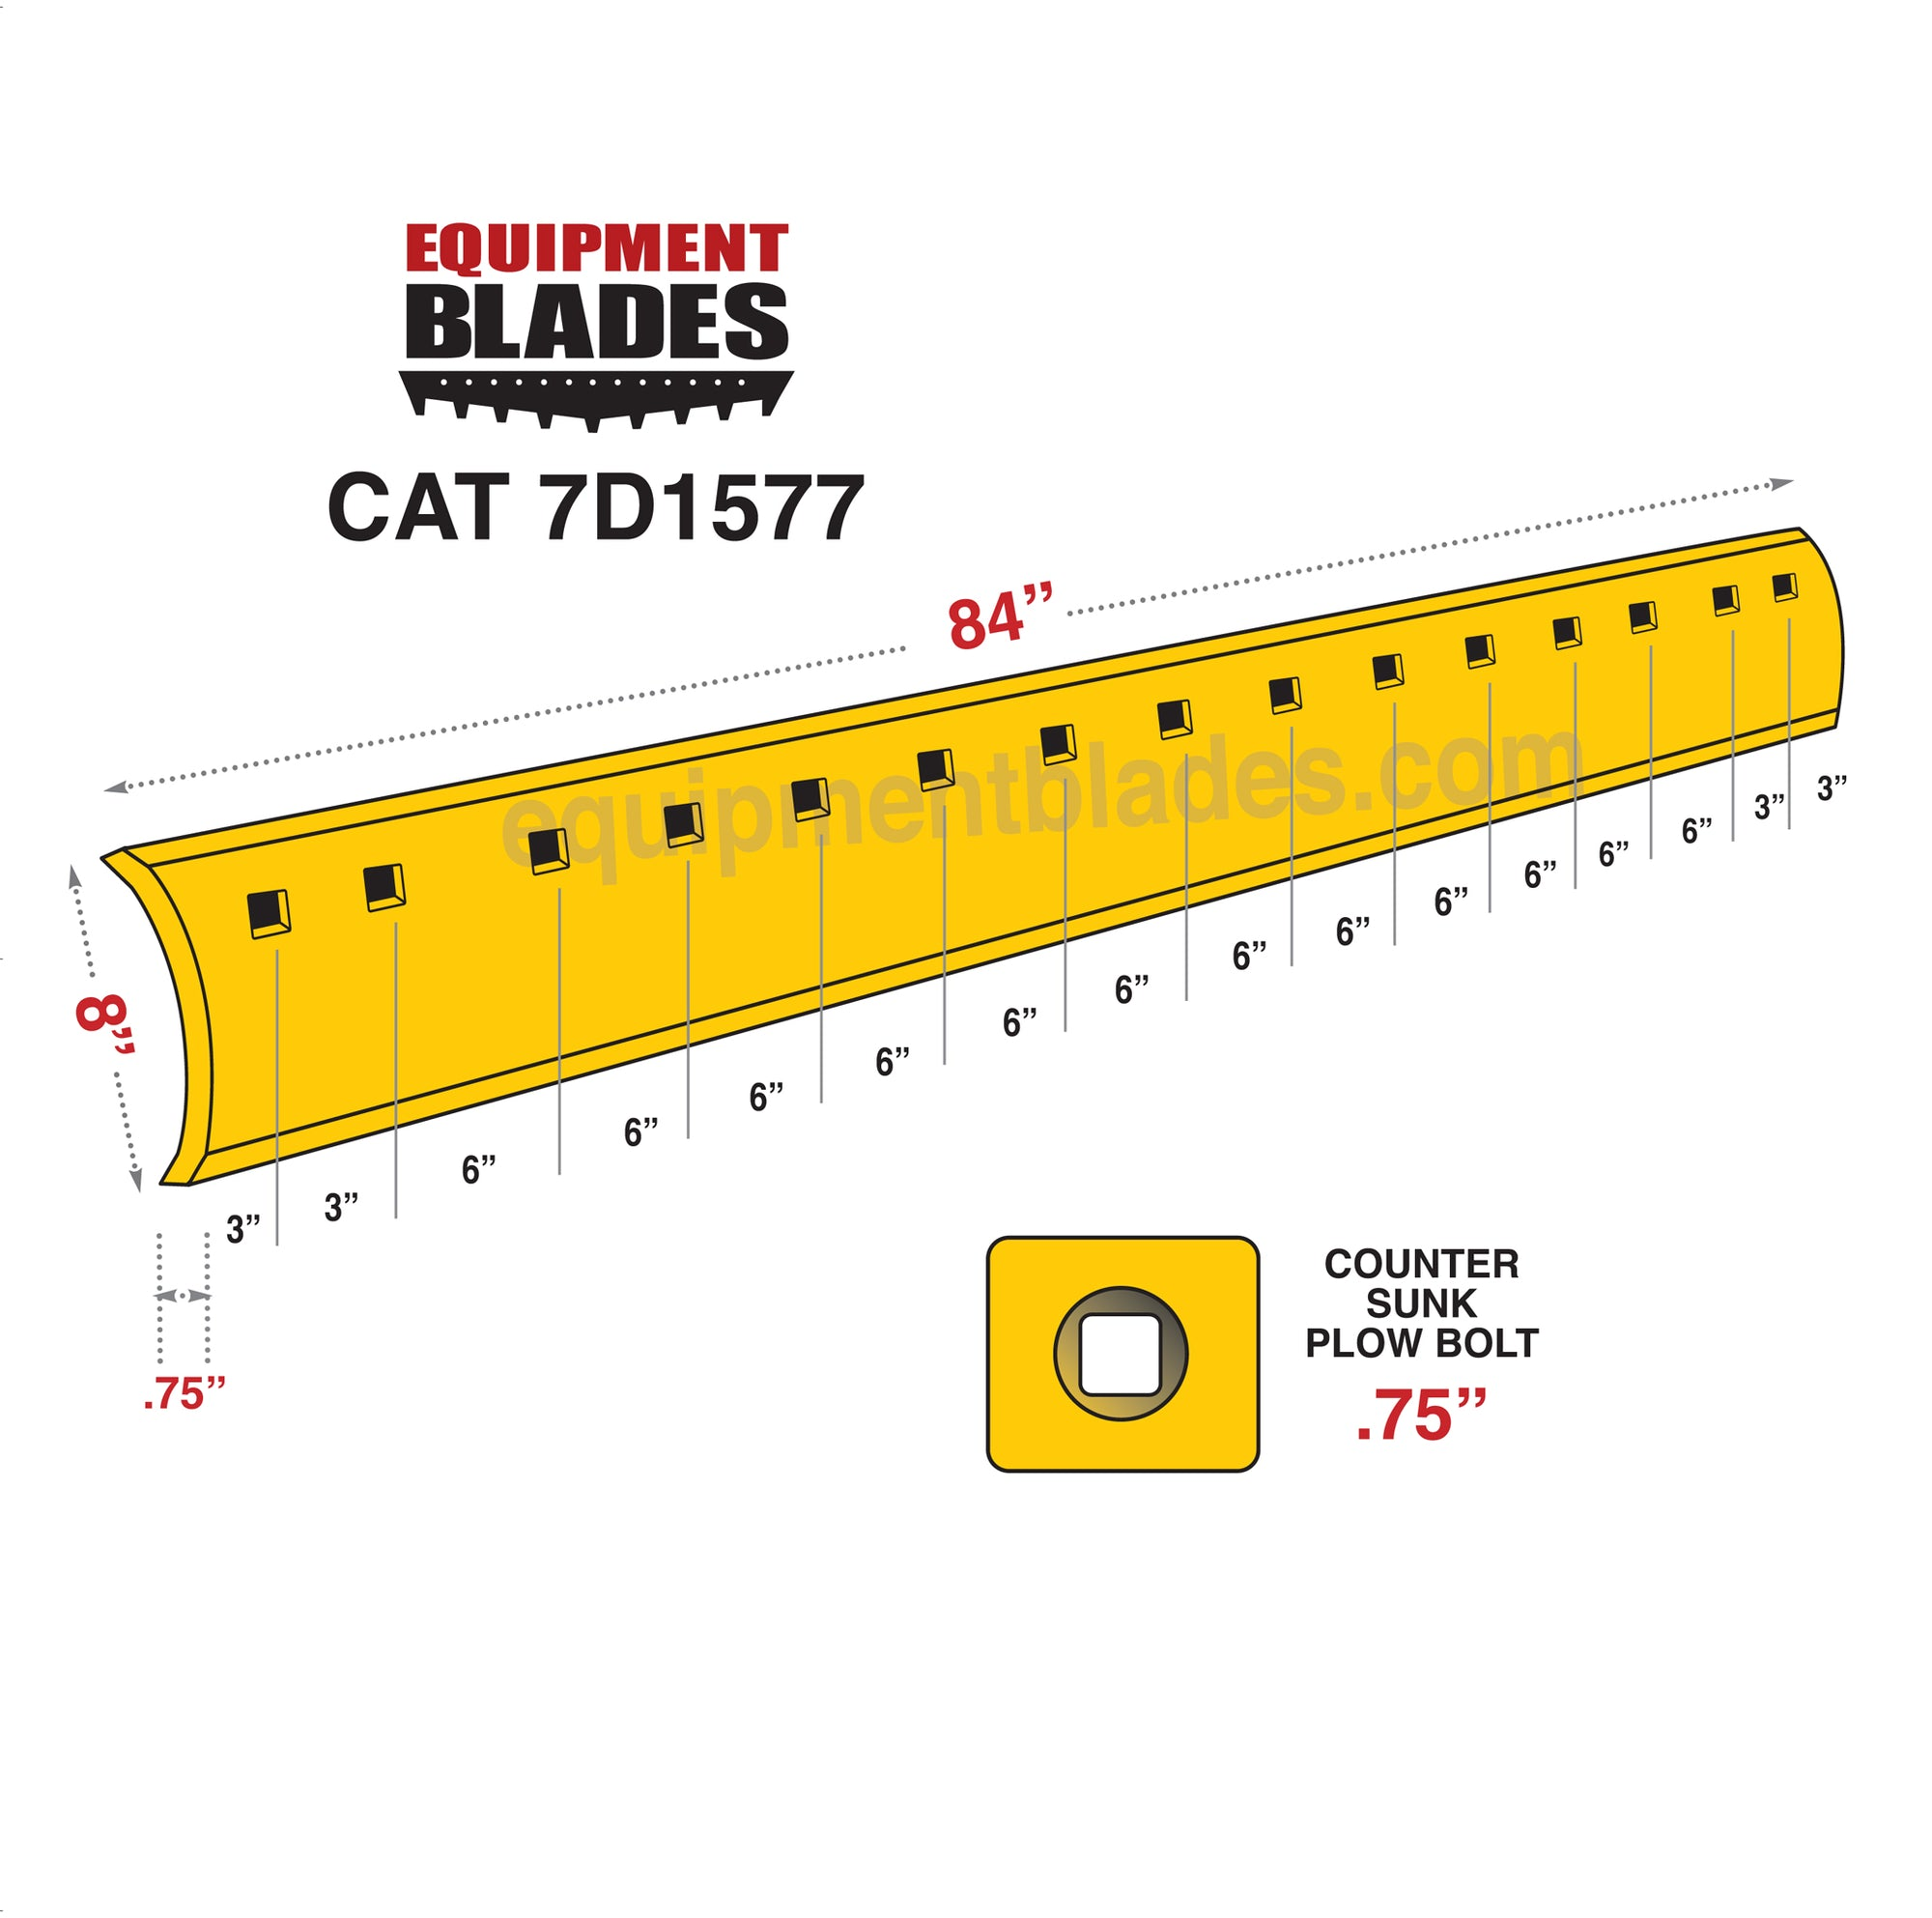 CAT 7D1577-Grader Blades-Equipment Blades Inc-Equipment Blades Inc